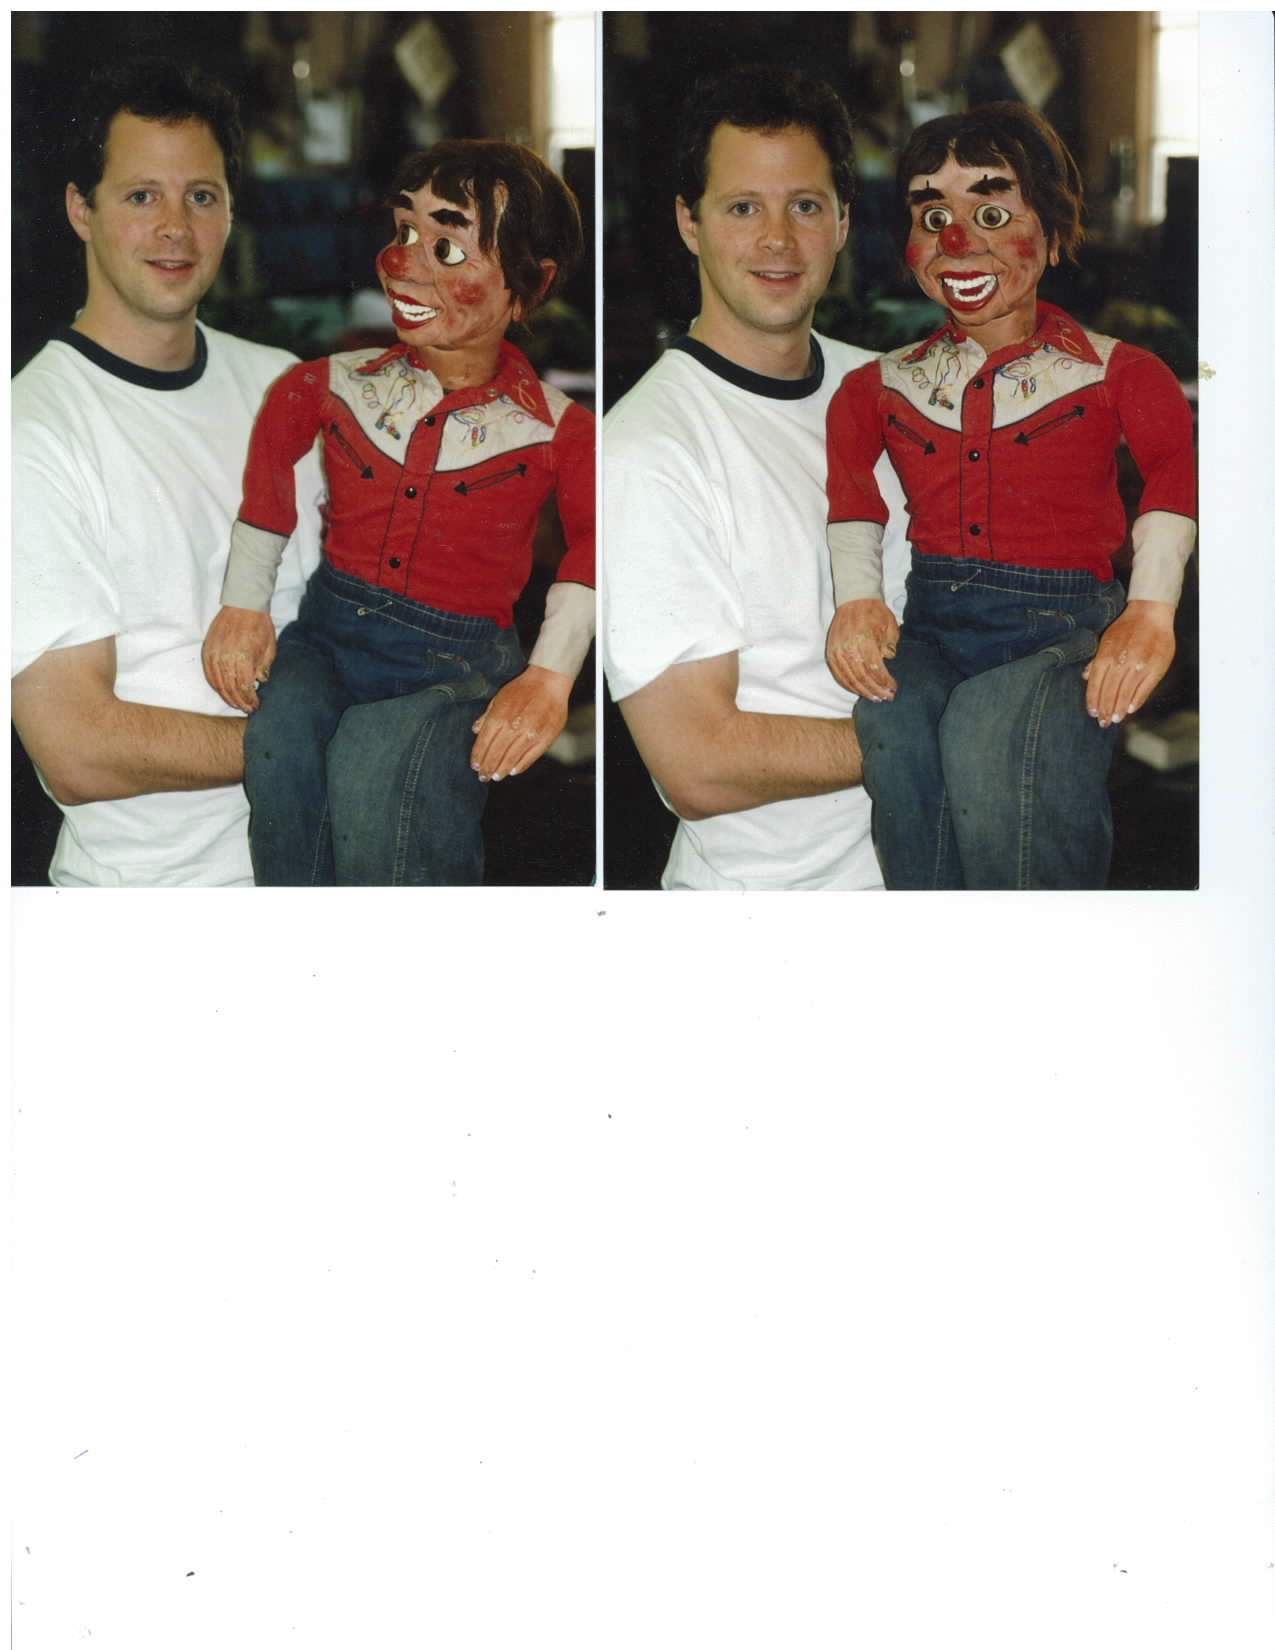 Andy Gross with another rare McElroy Ventriloquist Dummy